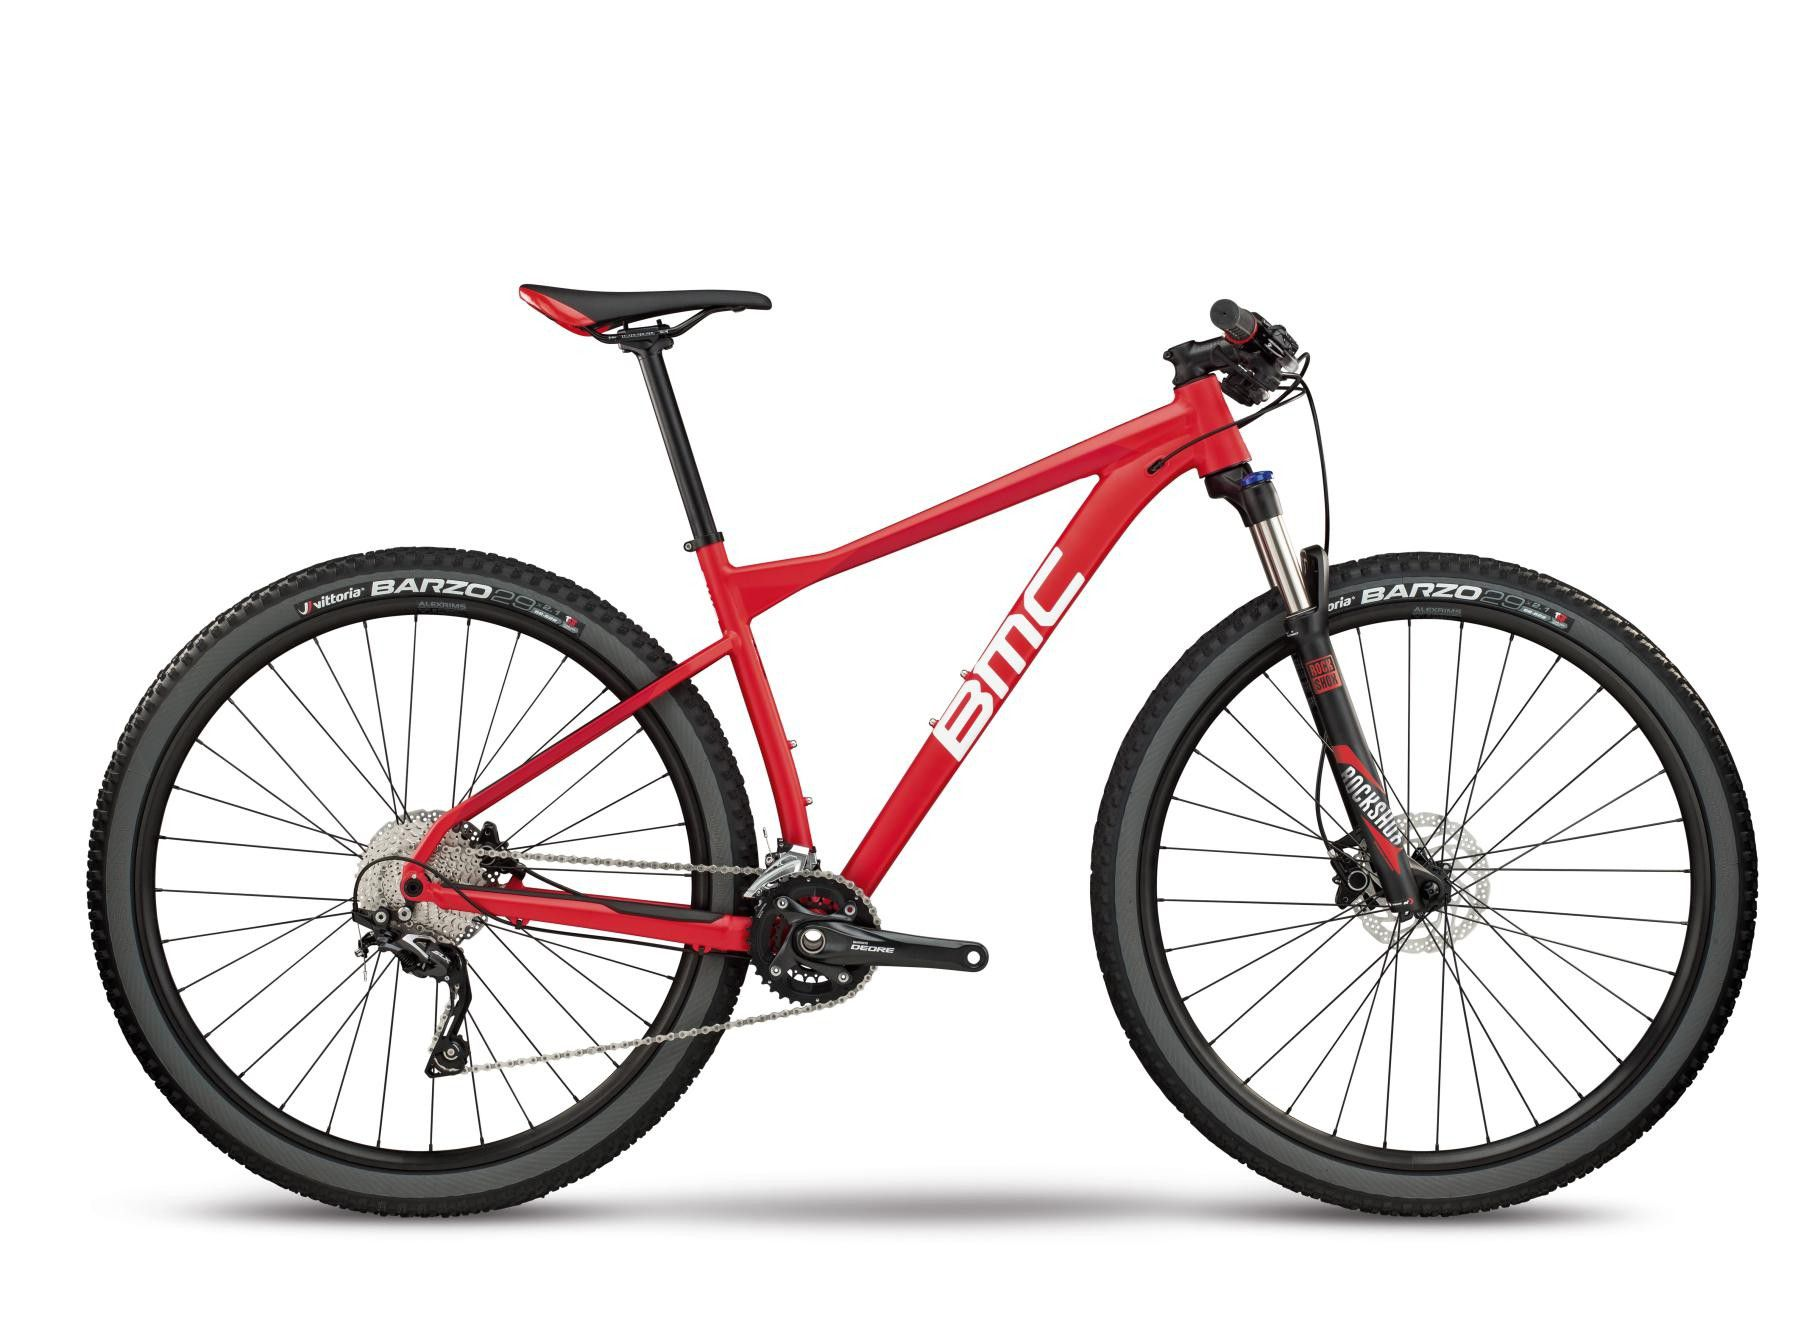 Bicicleta BMC aro 29 Team Elite 03 Three  2018 Vermelha